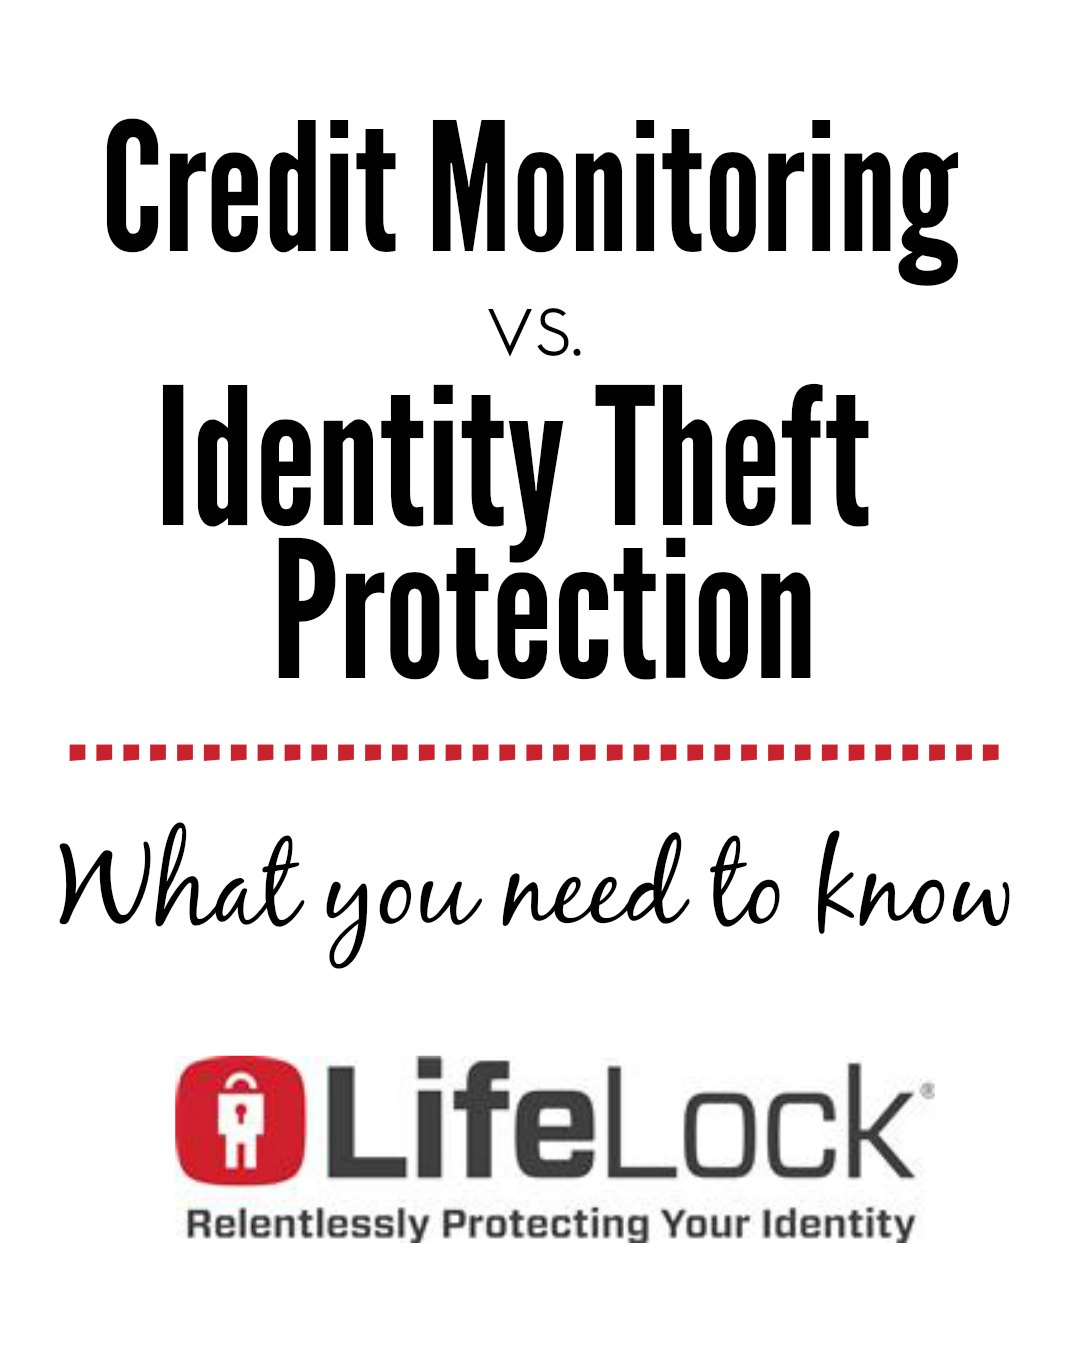 Identity Theft Protection with LifeLock